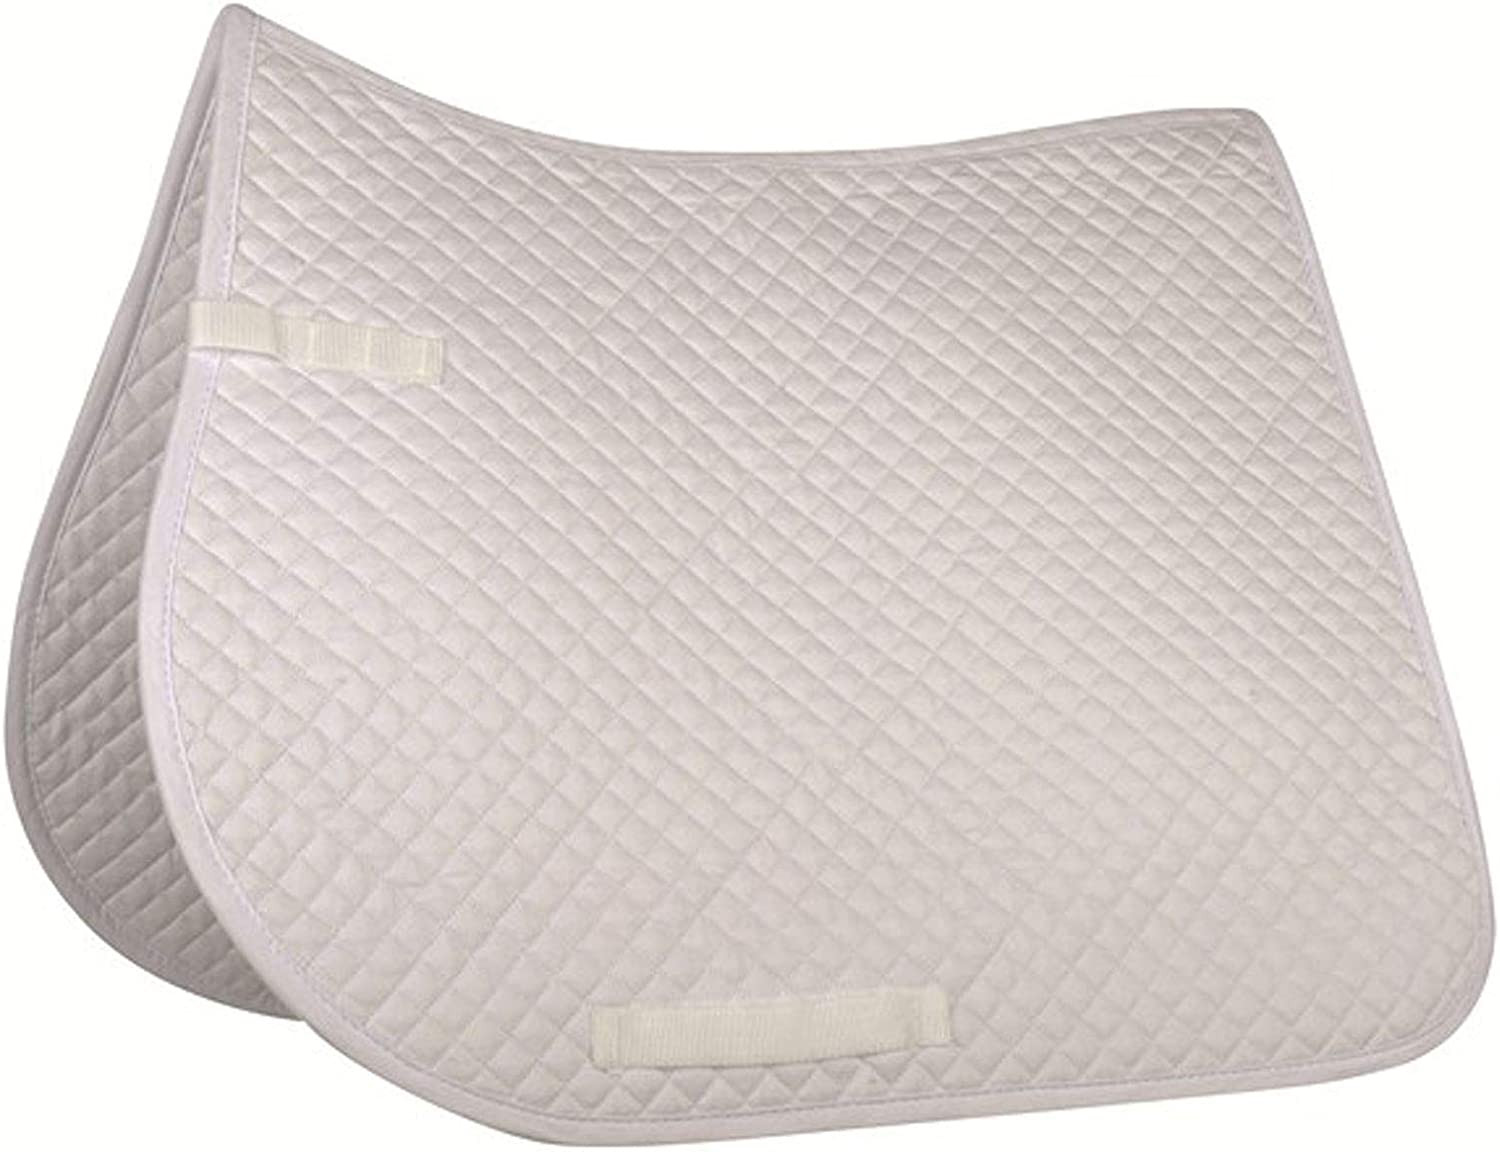 Hkm 4000315759057 Saddle trust Cloth Max 50% OFF Small Versatility6300 Quilted